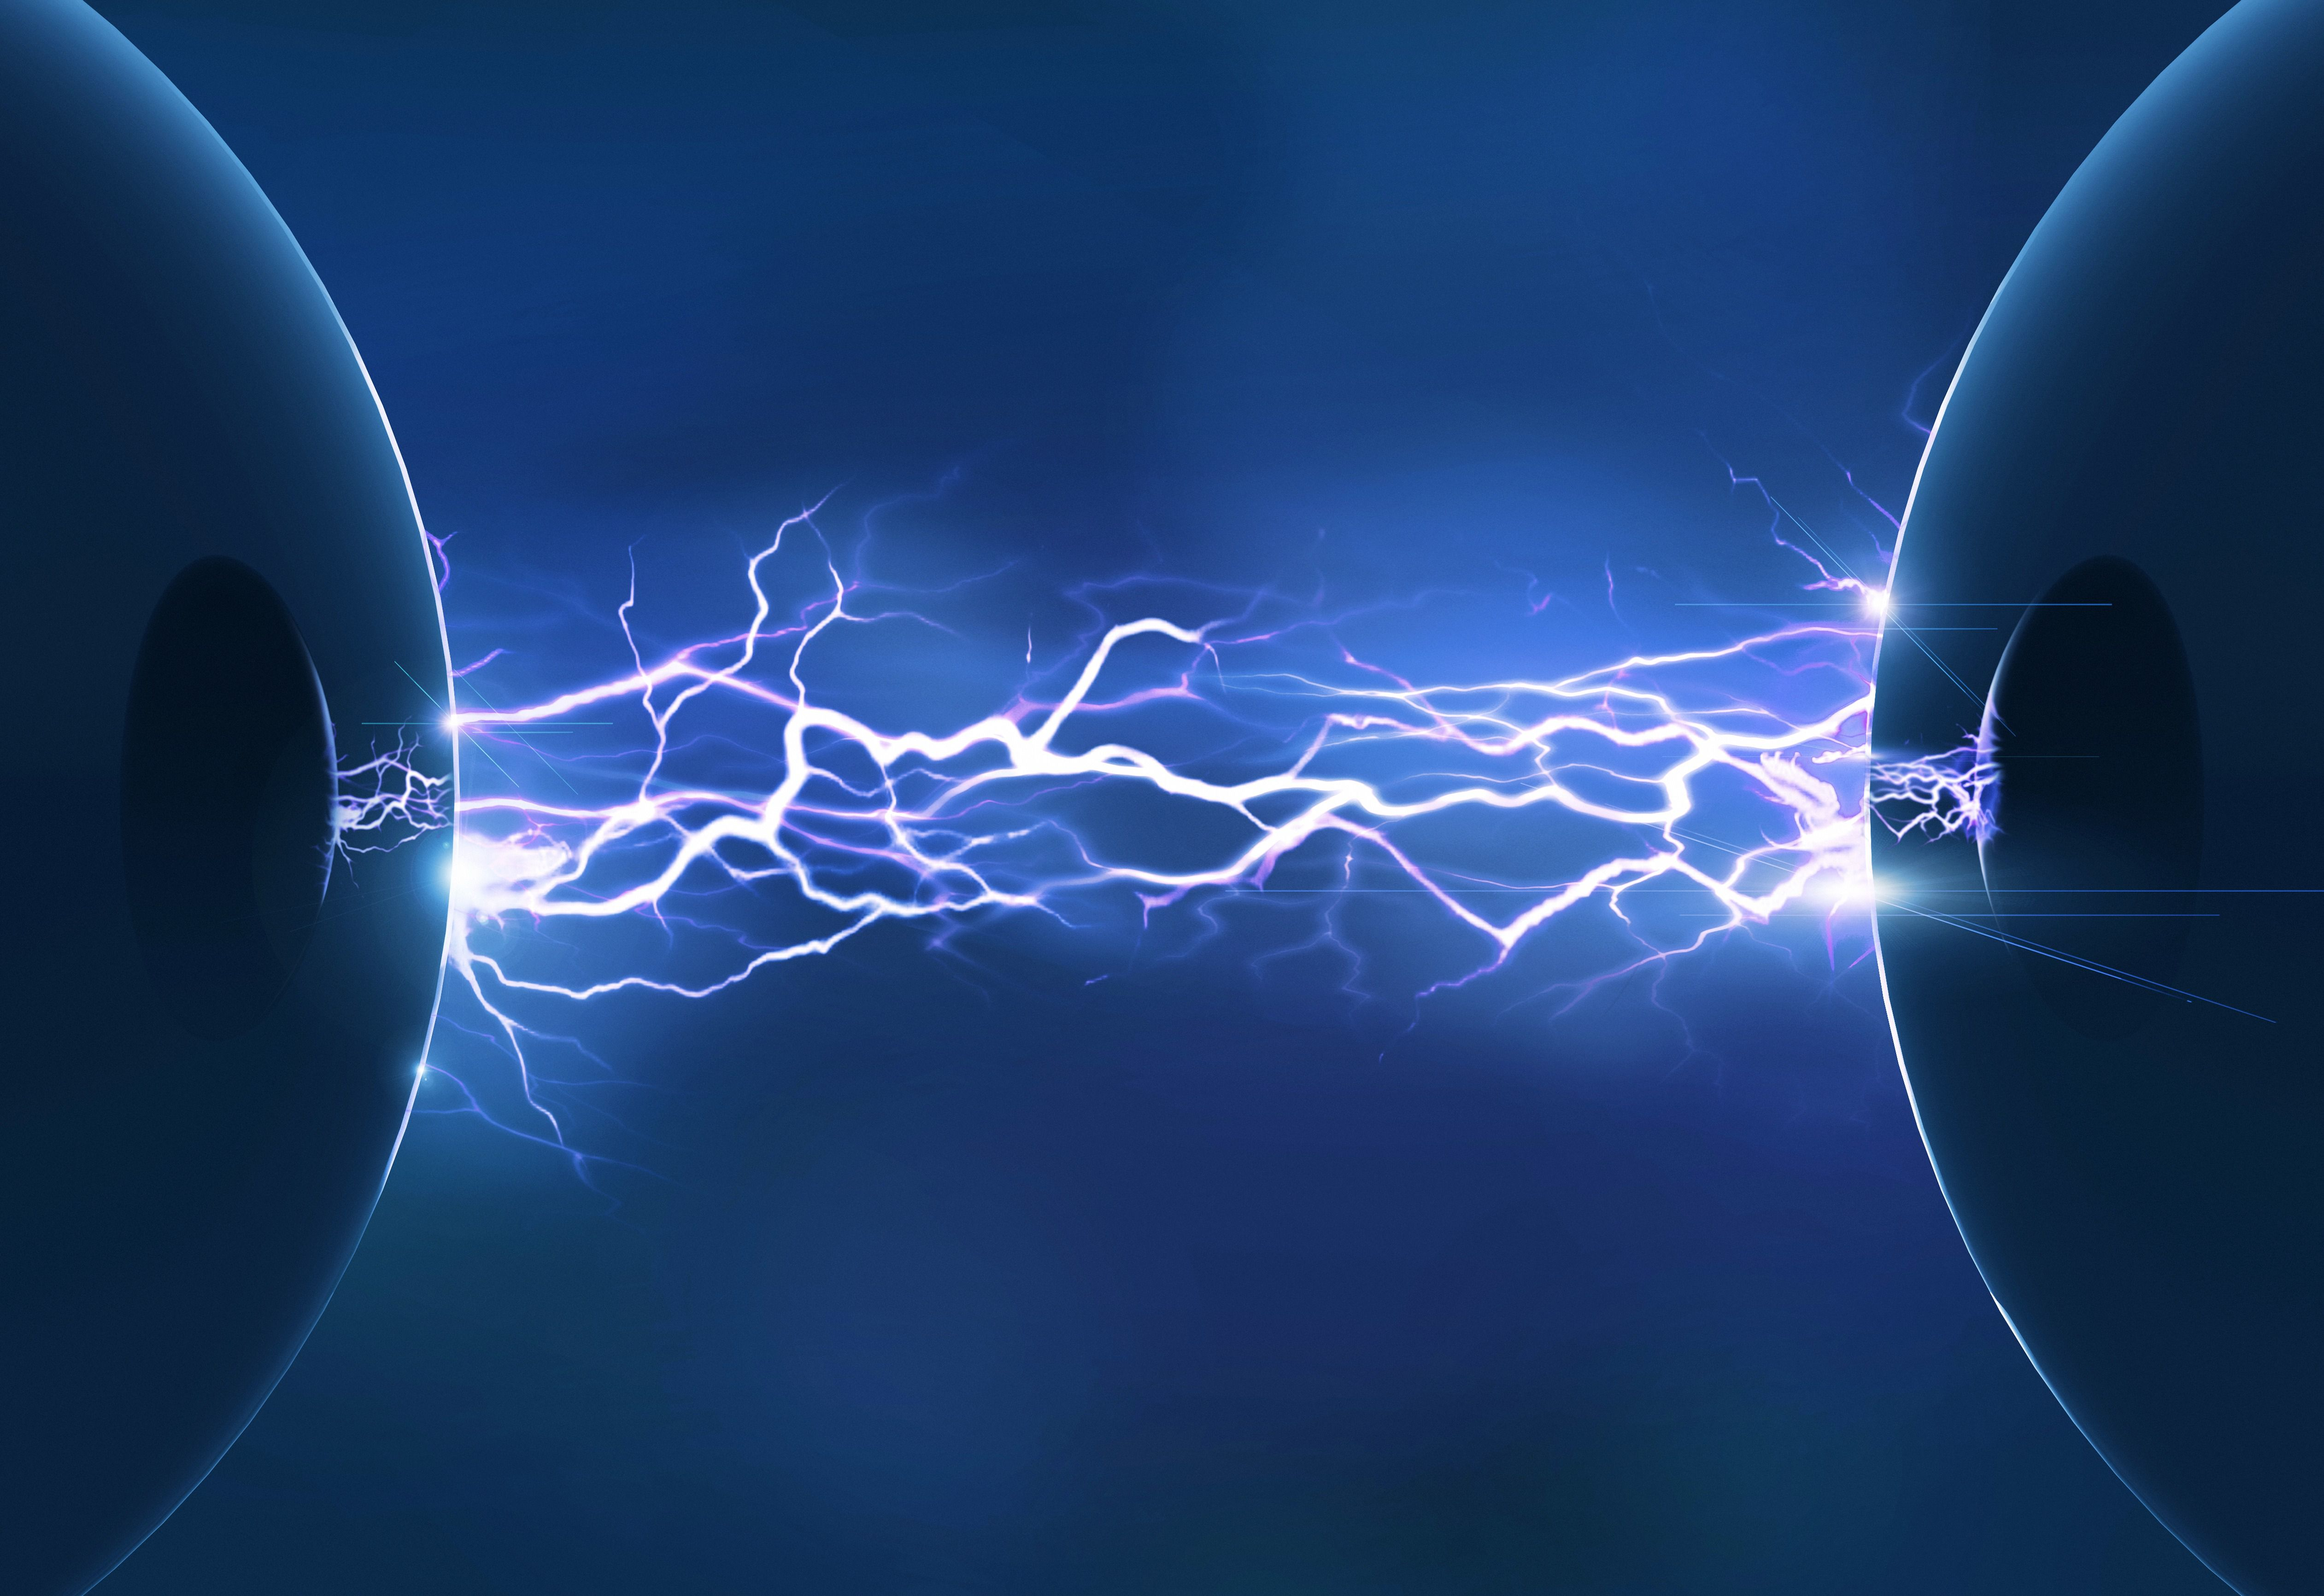 Volts To Watts Calculator >> Charge Definition and Examples (Physics and Chemistry)